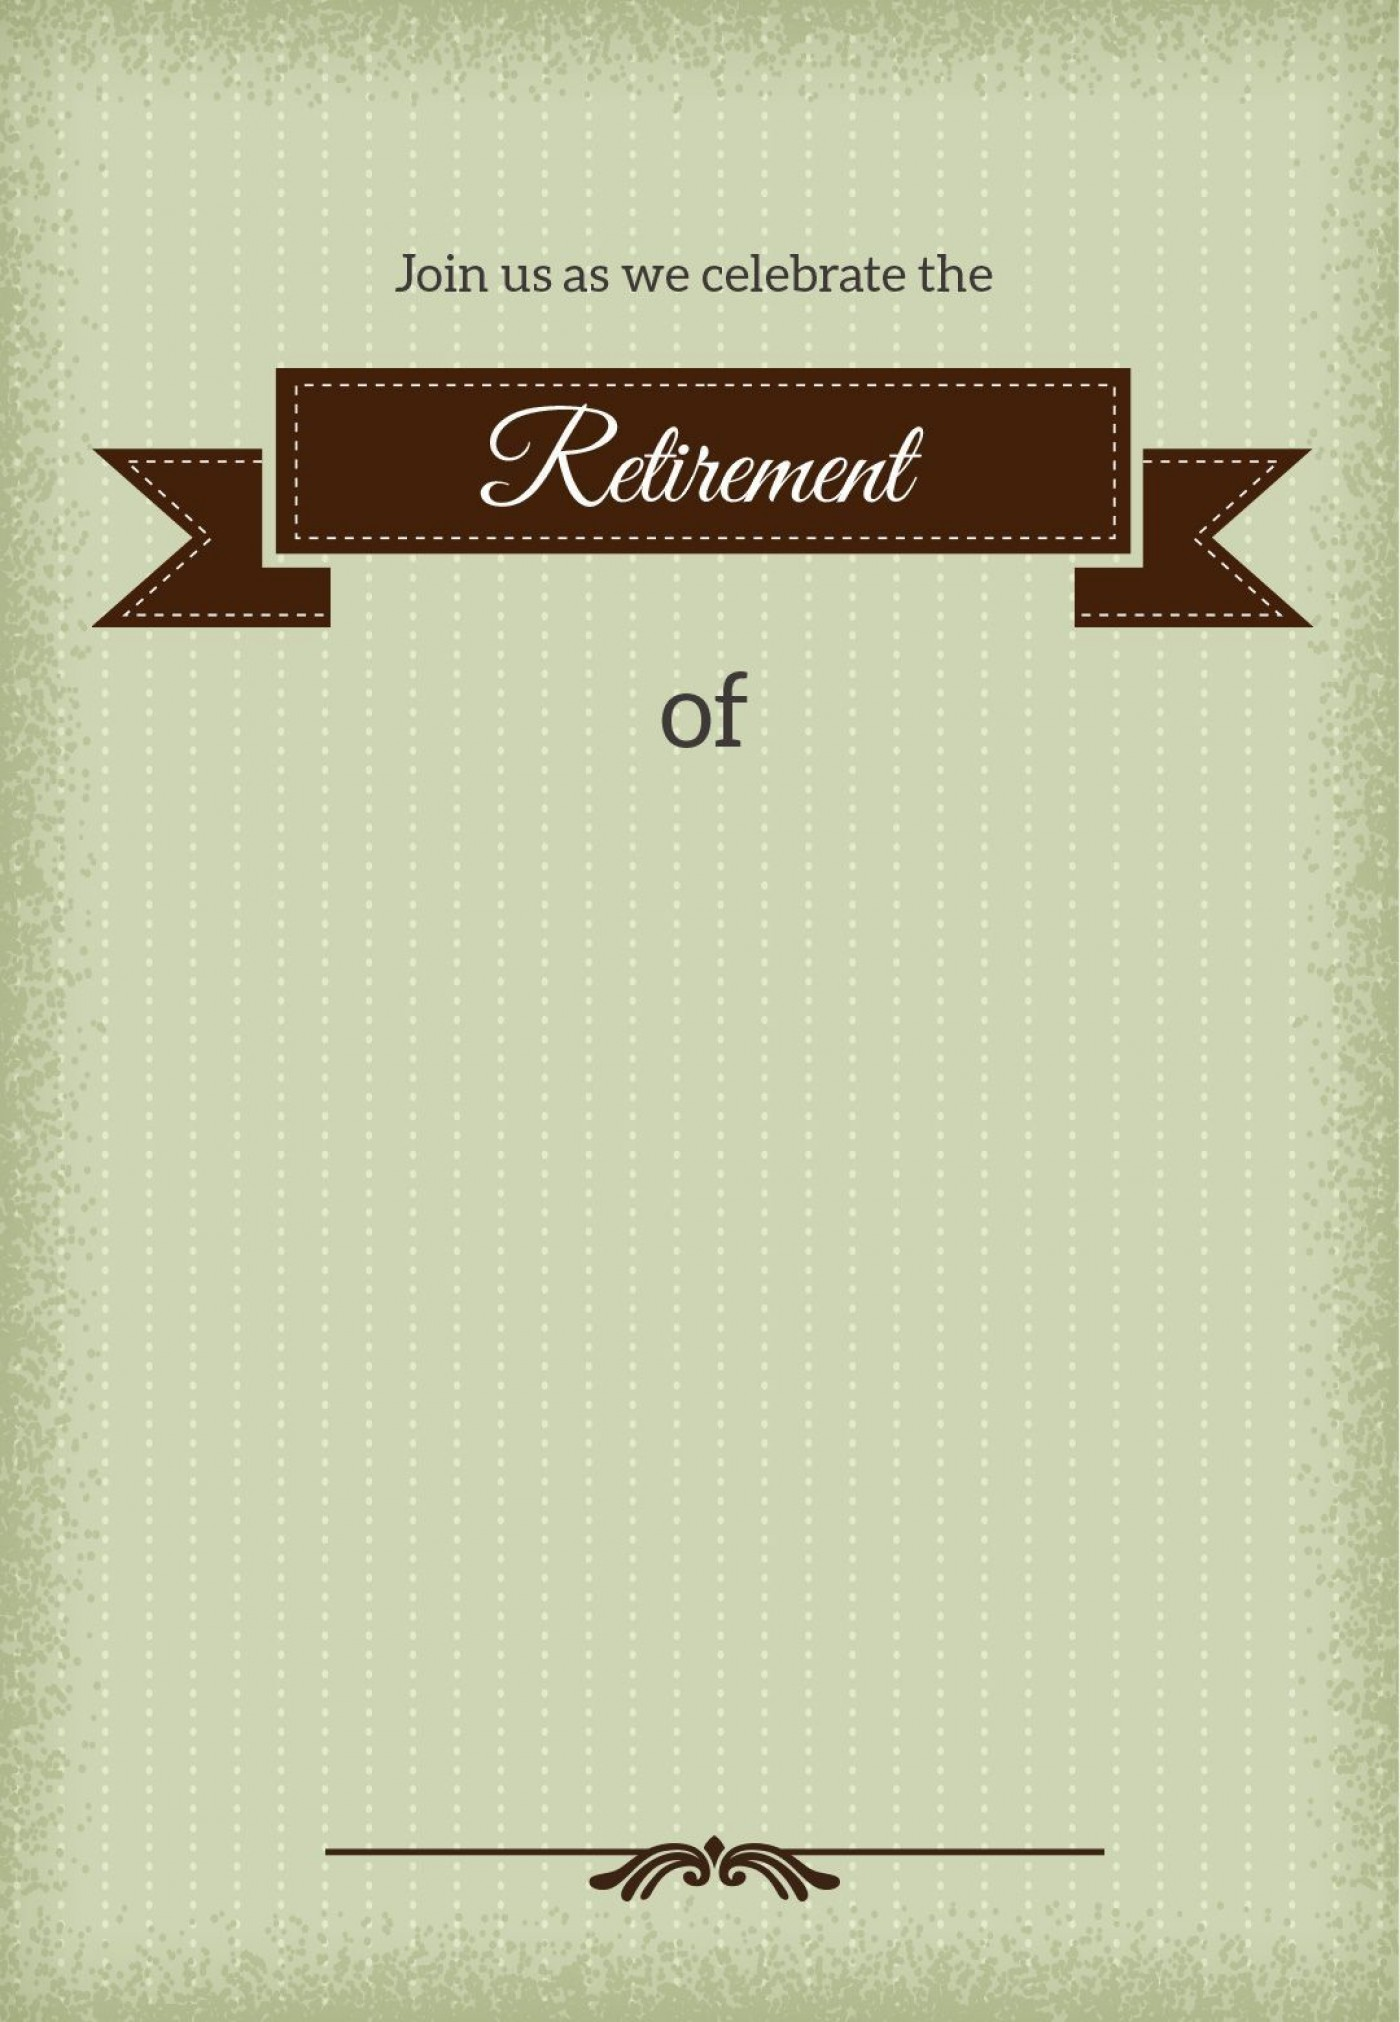 001 Stirring Retirement Invitation Template Free Idea  Party Printable For Word1400